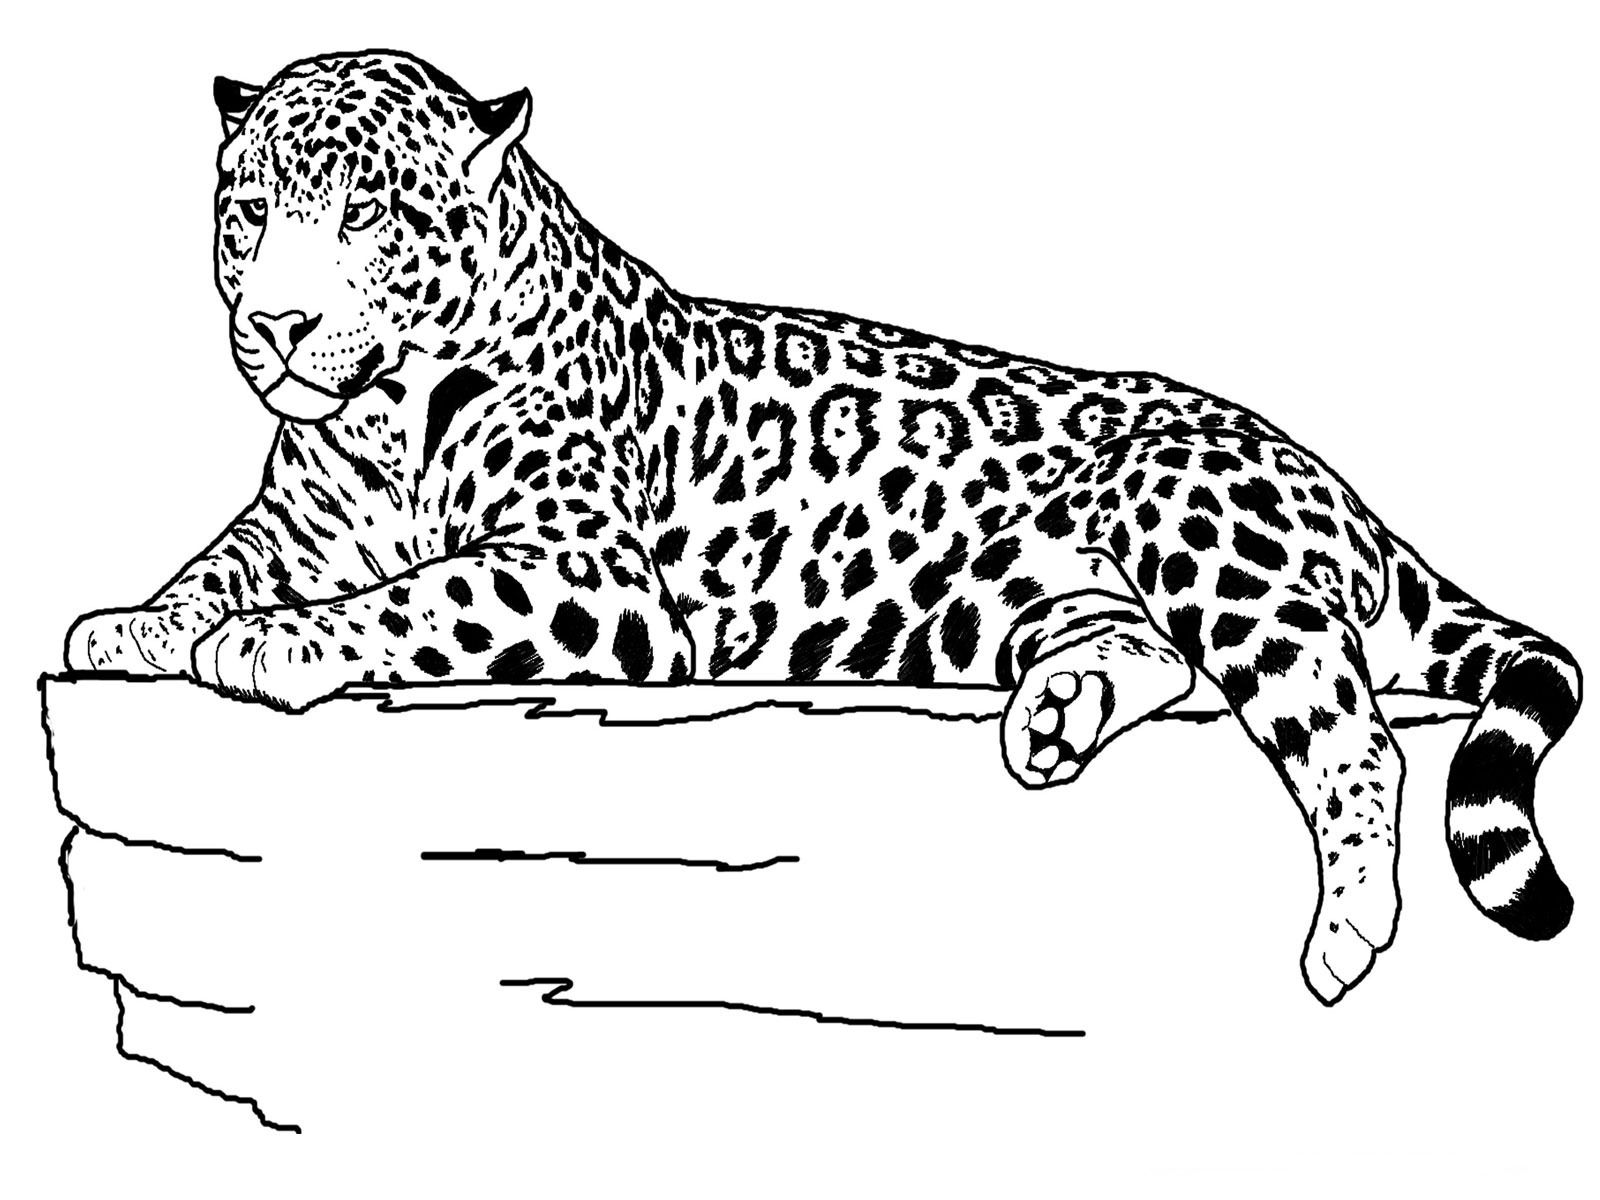 zoo animal coloring pages to print zoo animal coloring pages also available are farm animals pages animal coloring zoo print to